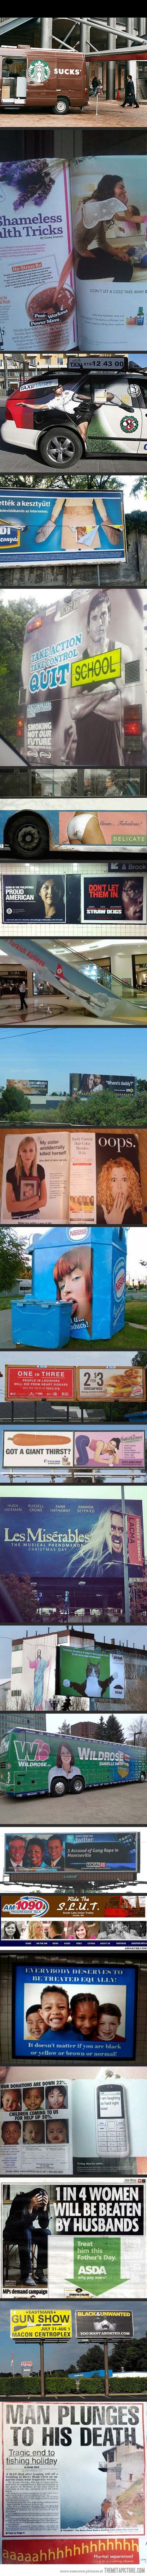 23 Most Unfortunate Advertising Placements… HAHAHA IM CRYING